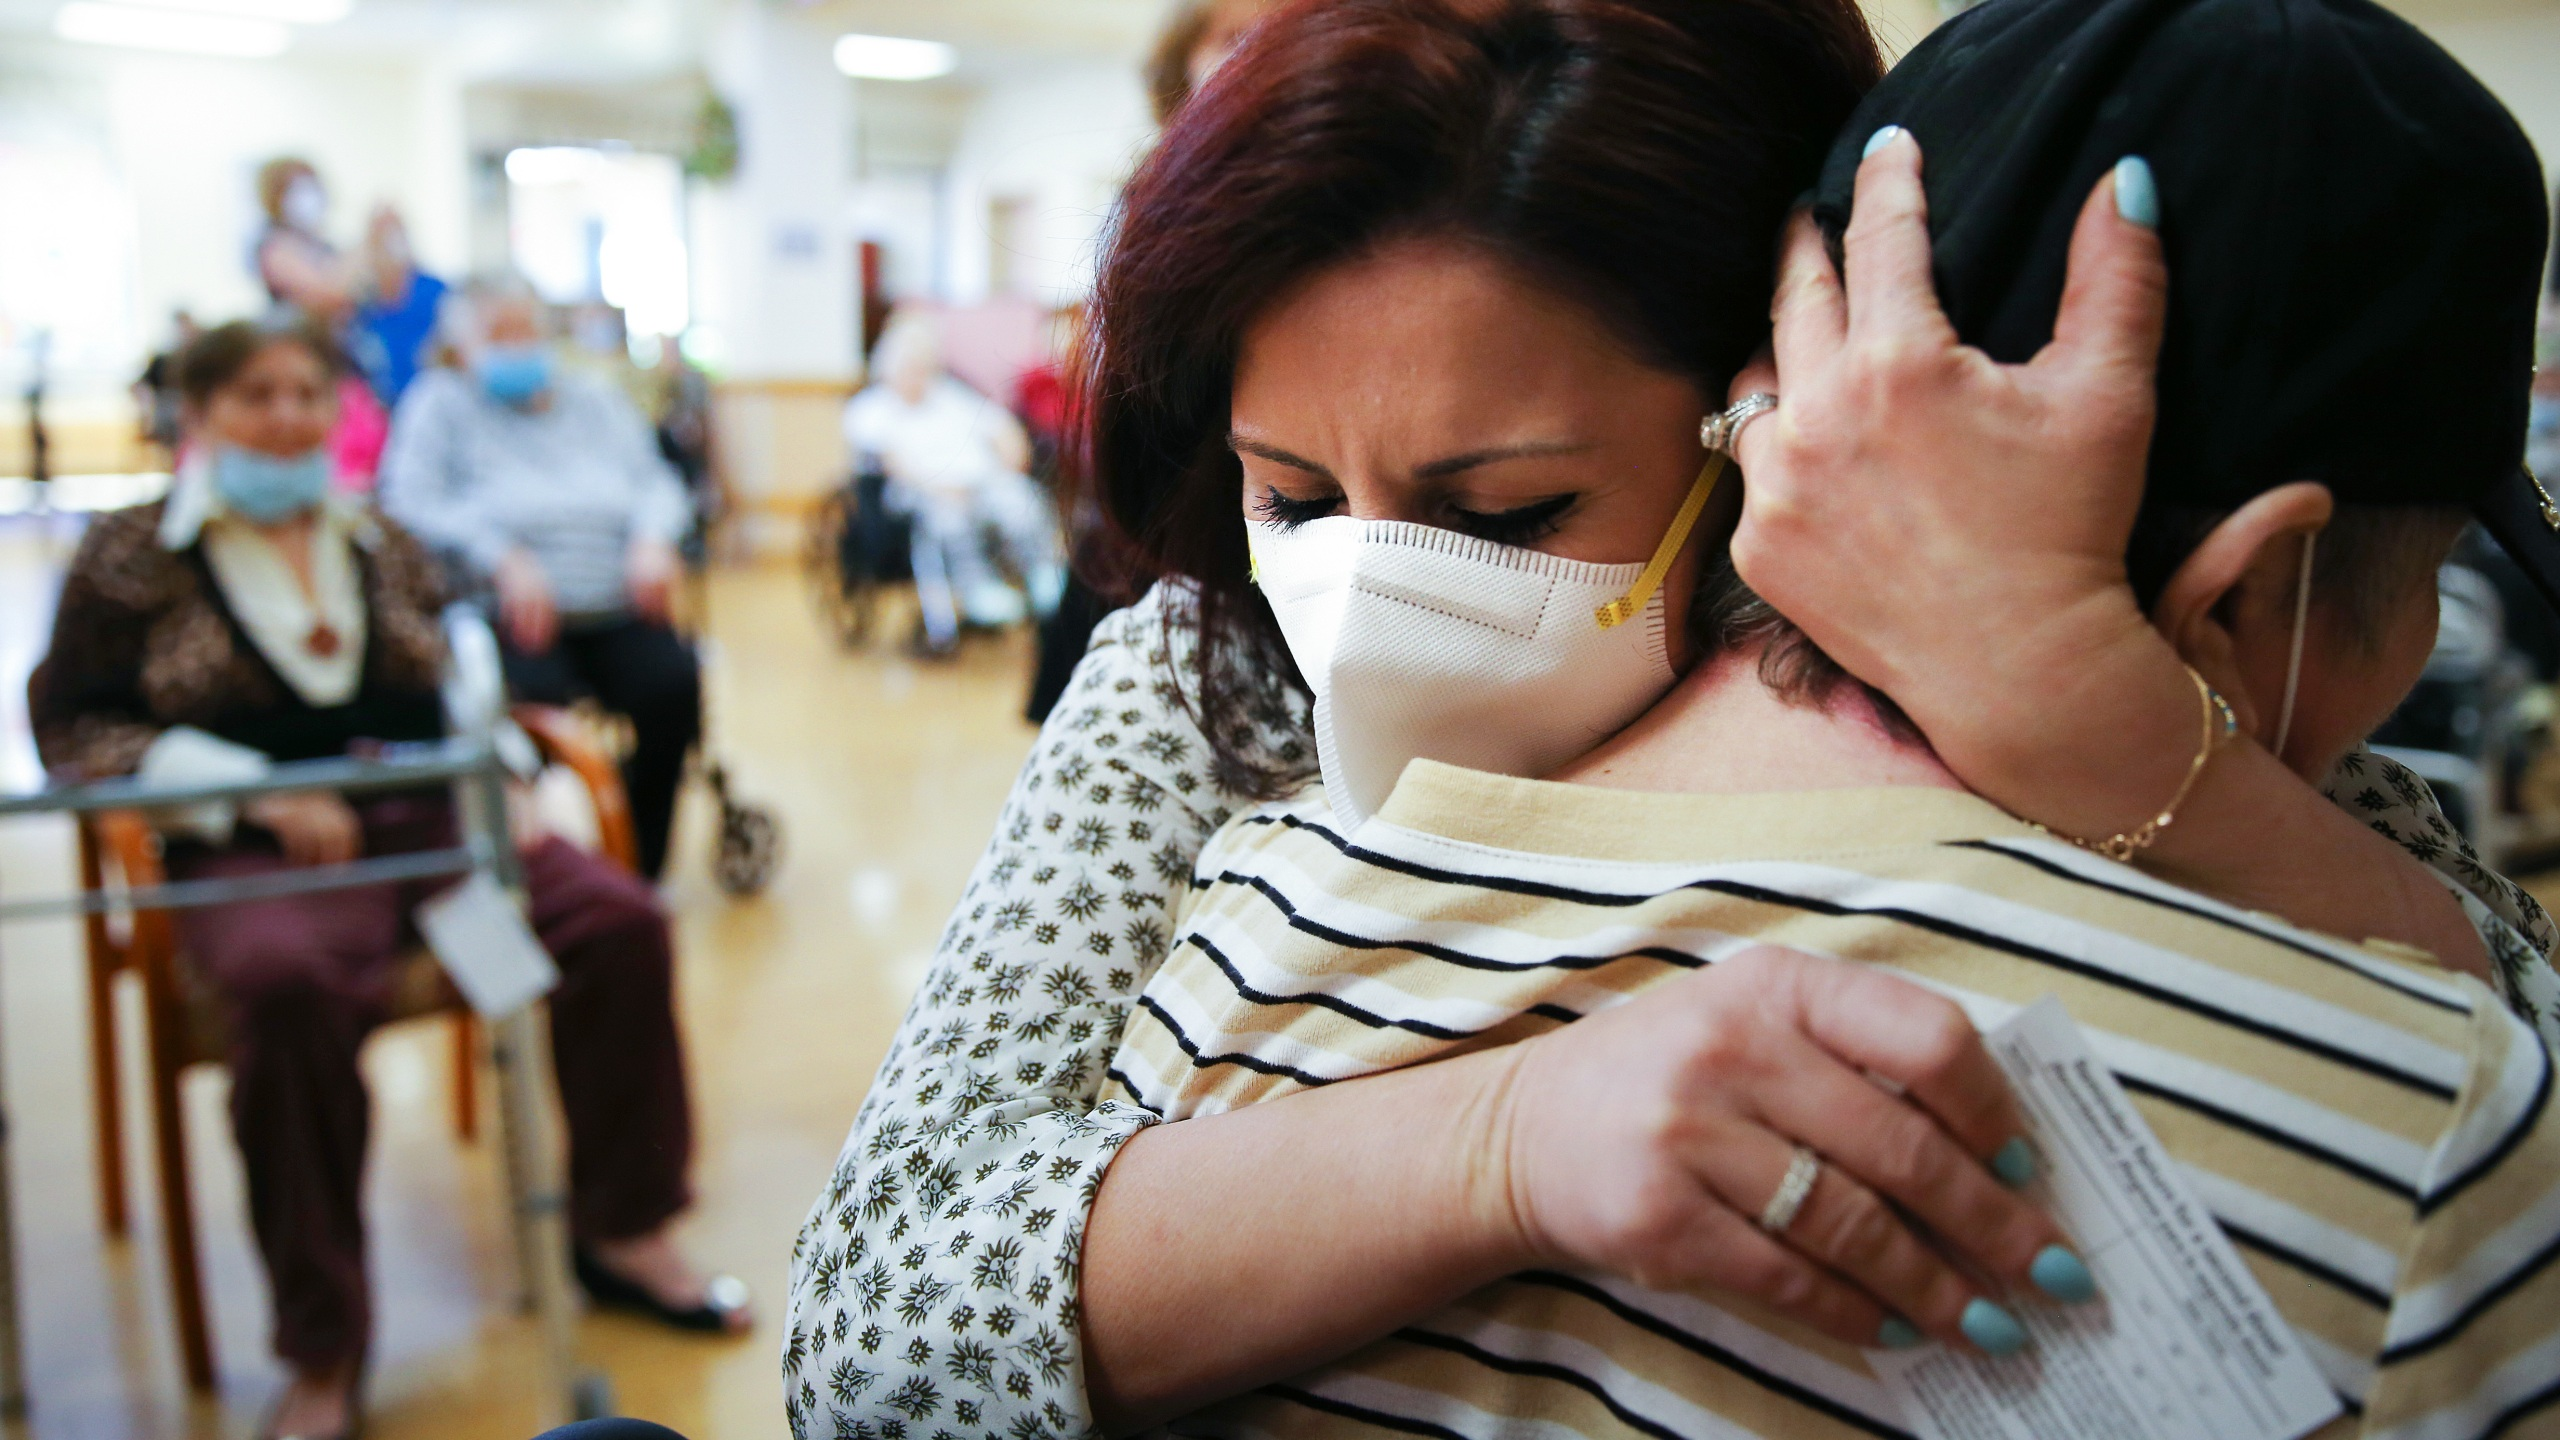 Executive director Margarita Kechichian, center, hugs a long-time resident during an Easter concert for vaccinated residents at the Ararat Nursing Facility in Mission Hills on April 1, 2021. (Mario Tama / Getty Images)